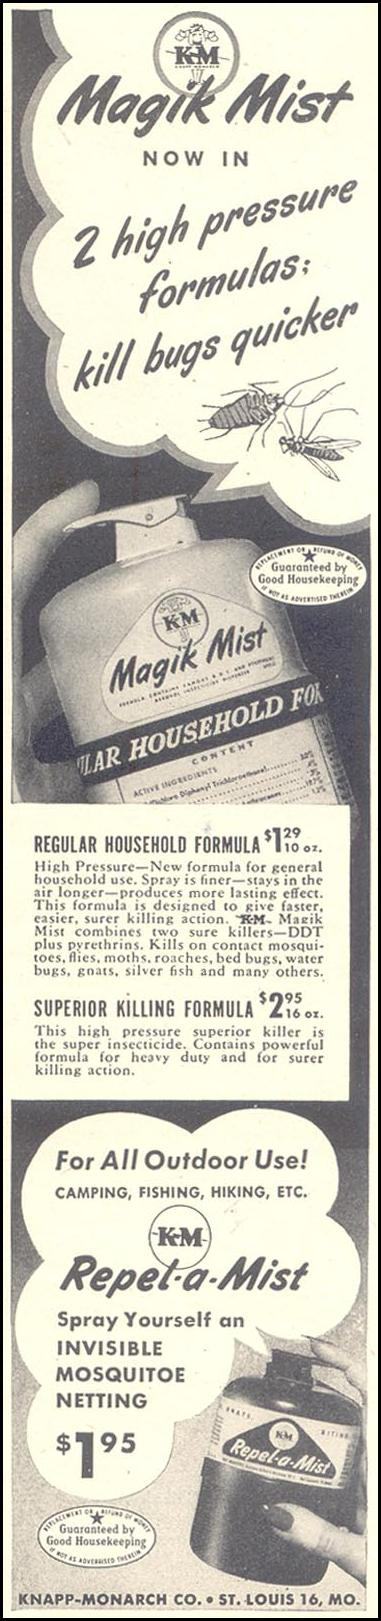 MAGIK MIST INSECTICIDE GOOD HOUSEKEEPING 07/01/1948 p. 227